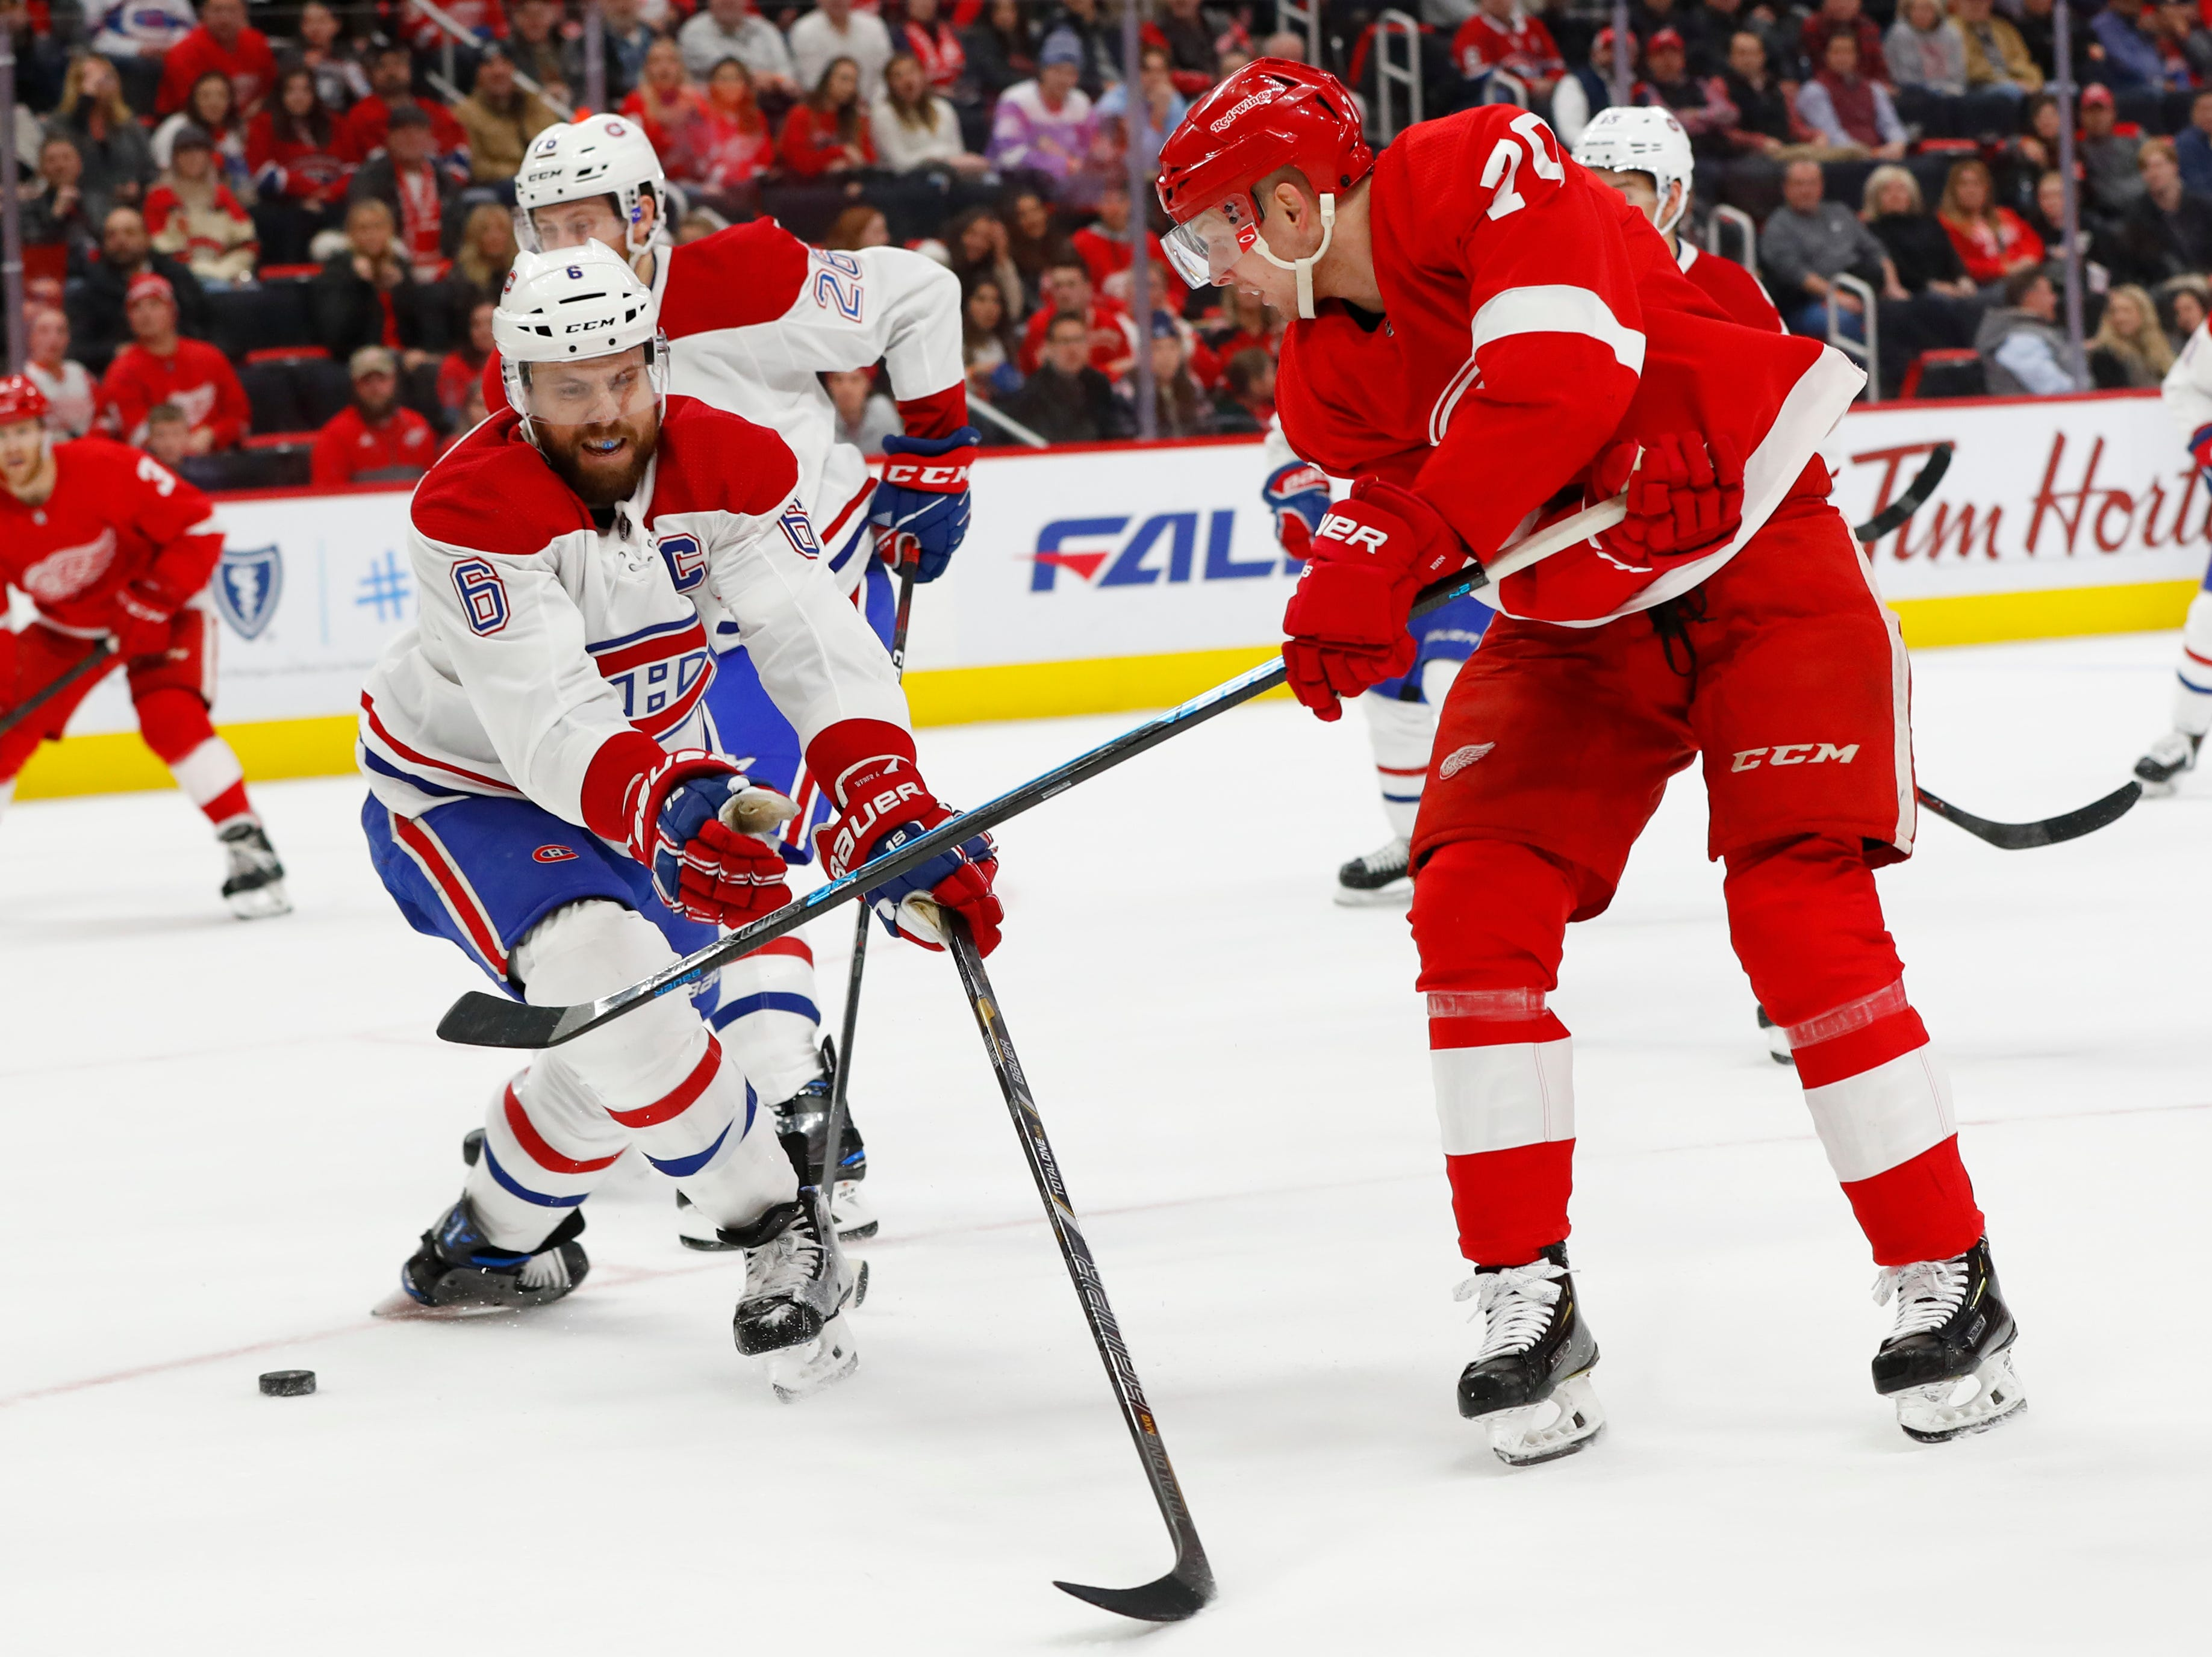 Detroit Red Wings center Christoffer Ehn (70) shoots as Montreal Canadiens defenseman Shea Weber (6) defends in the second period.